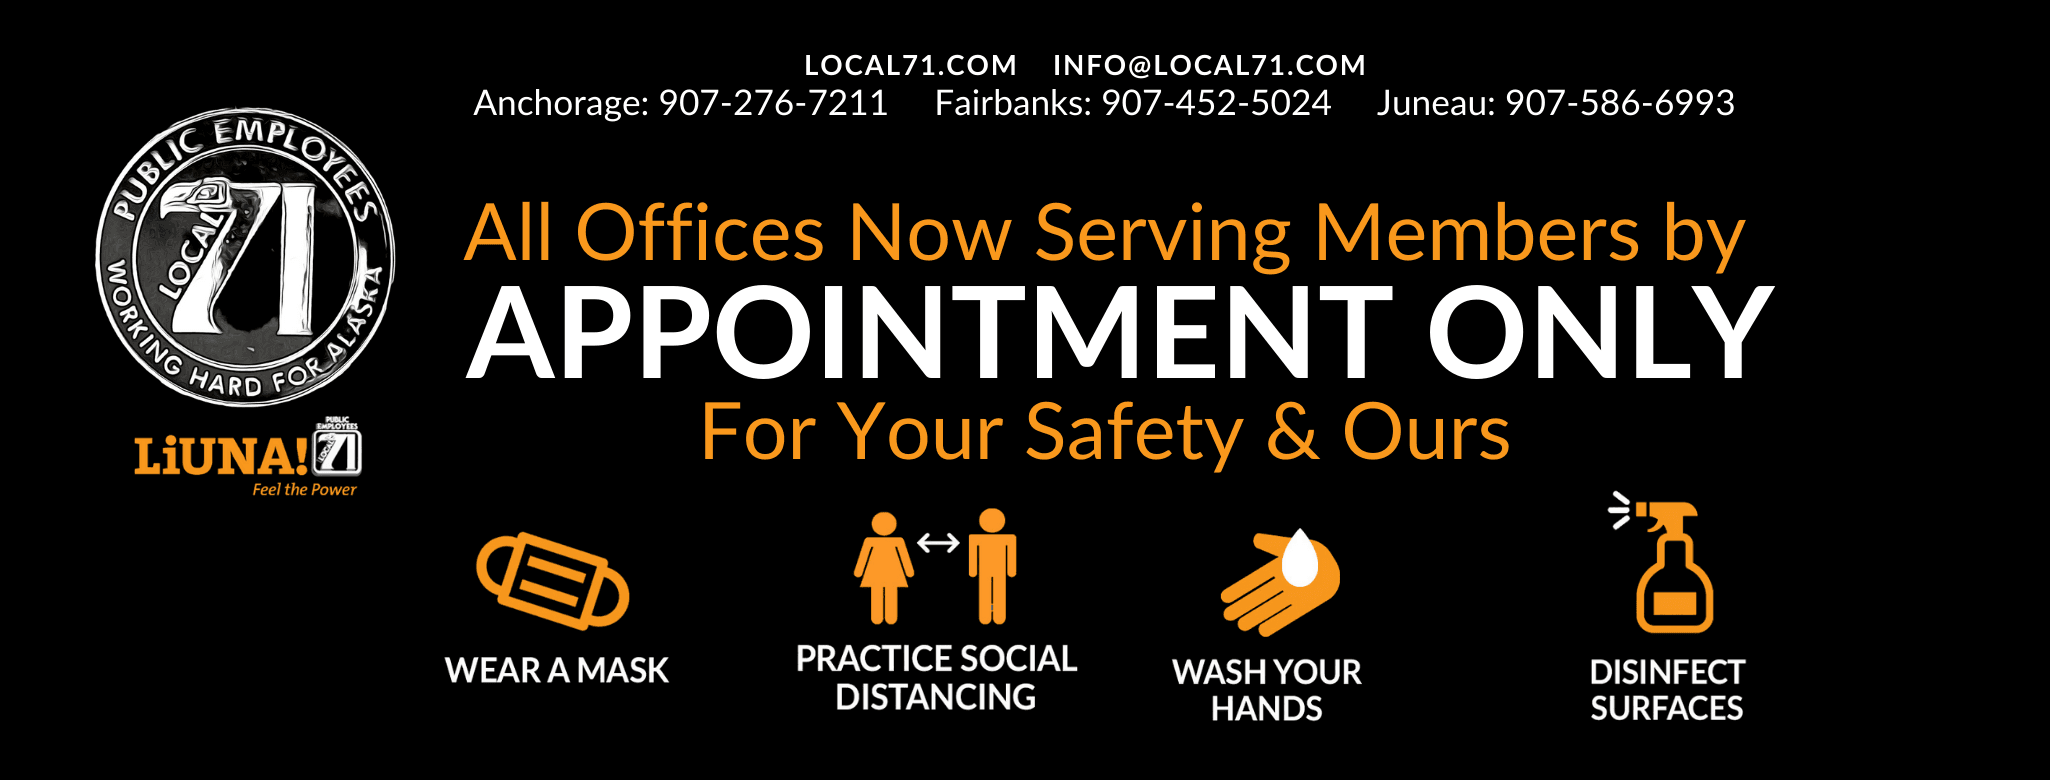 All Offices Now Serving Members by APPOINTMENT ONLY Until Further Notice (2).png